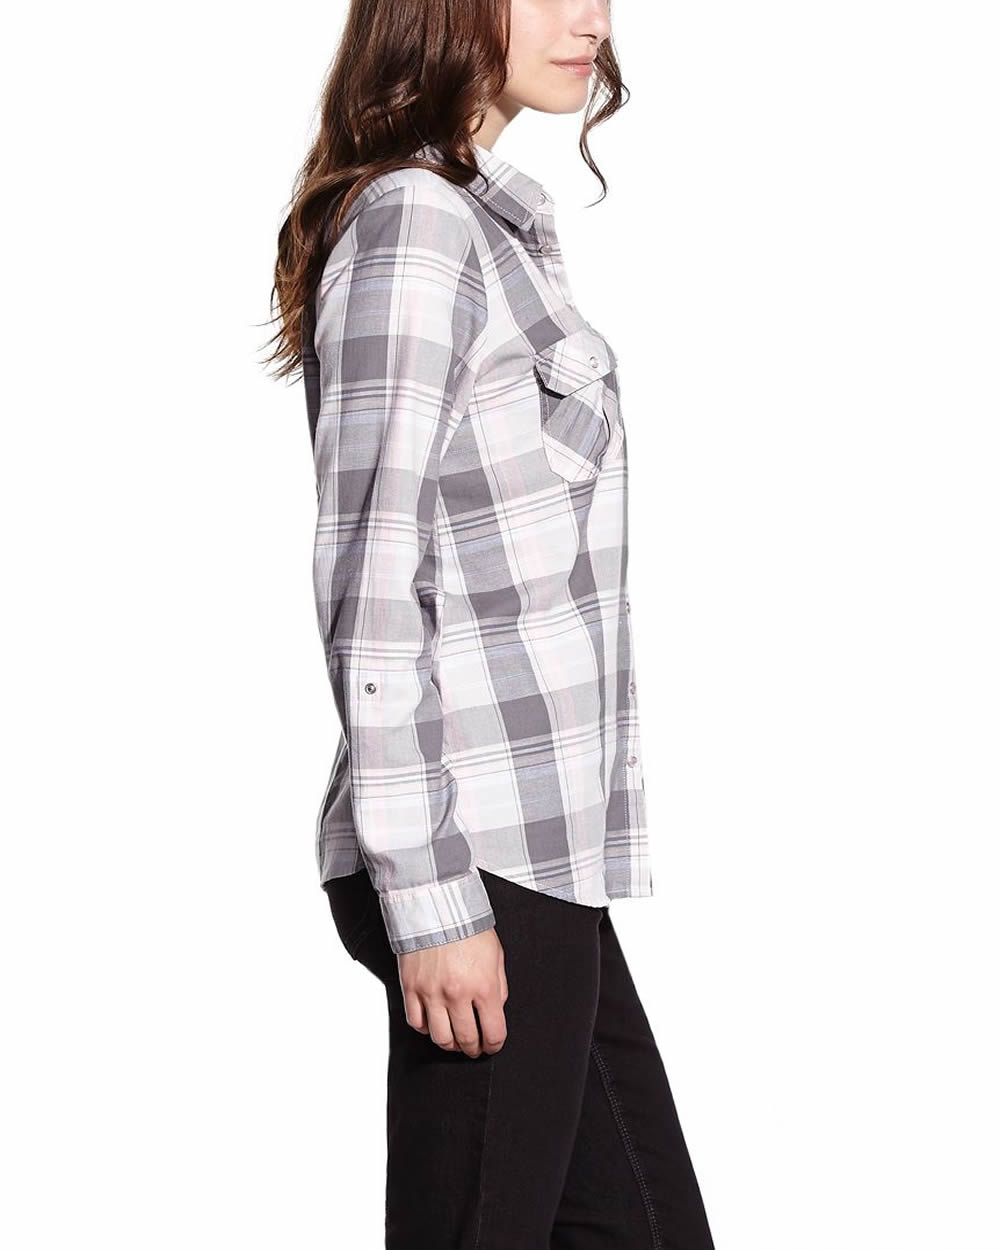 Long Sleeve Plaid Shirt Women Reitmans